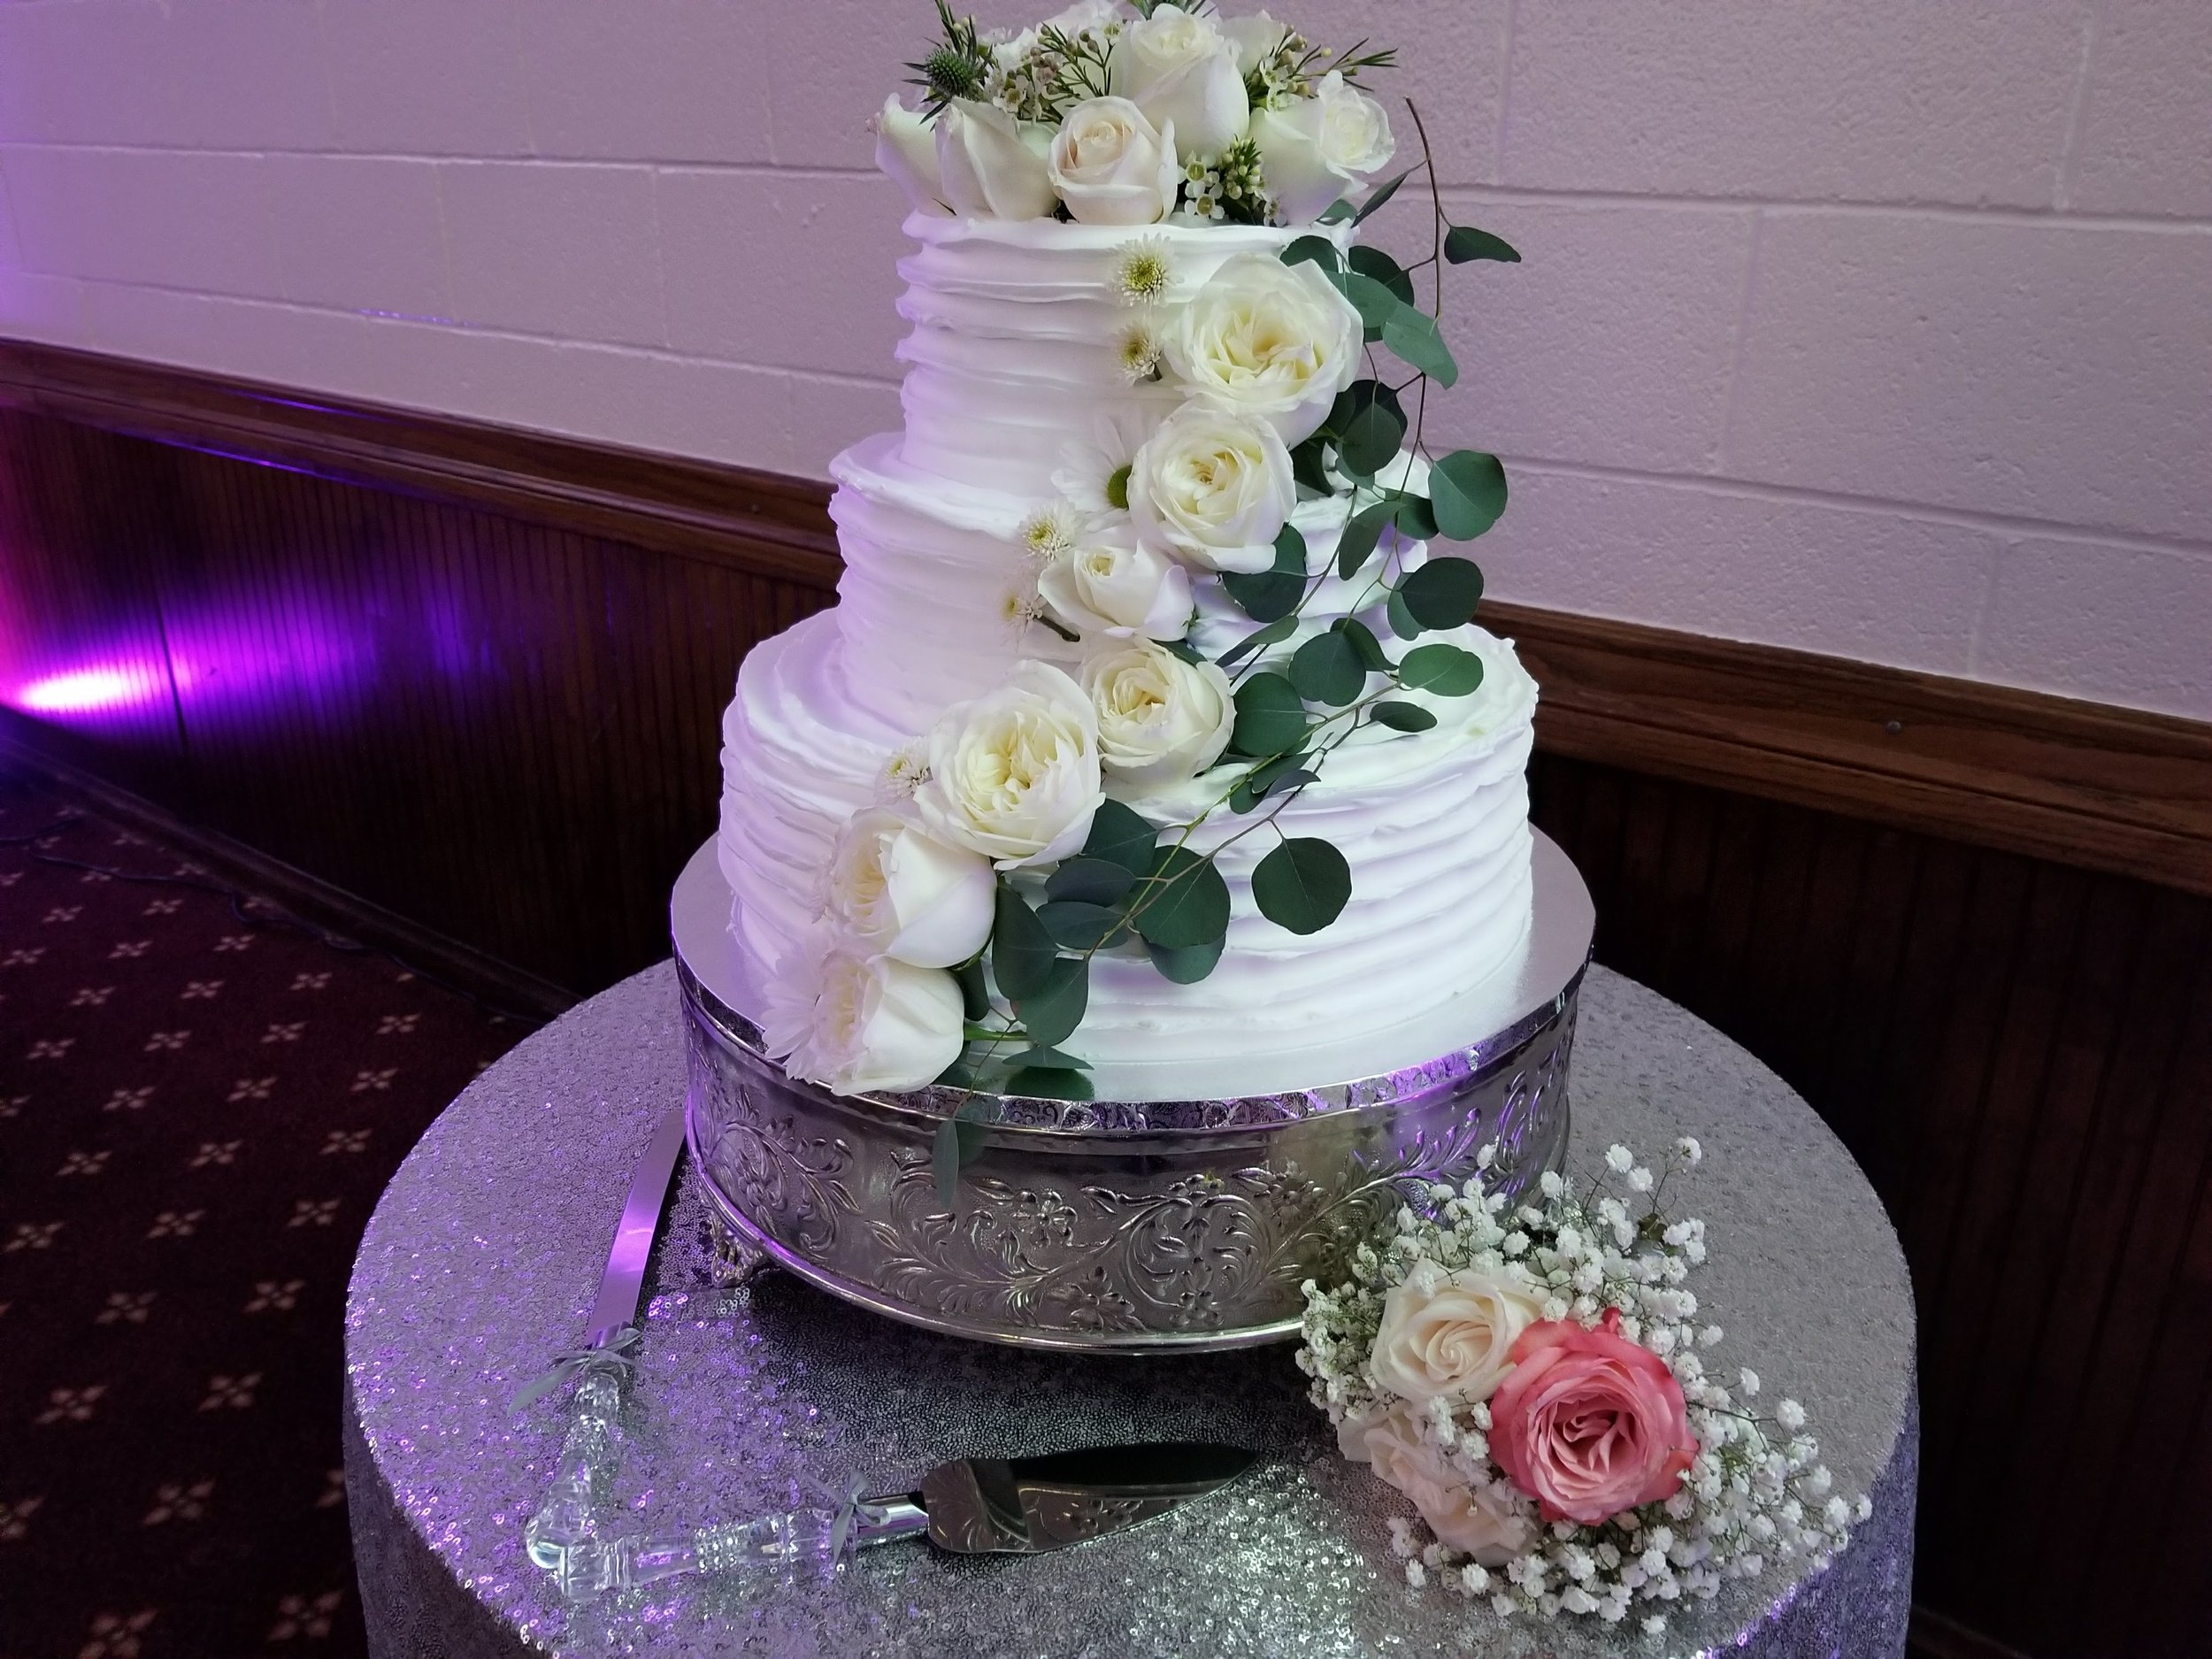 We added fresh flowers to the plain white cake to dress it up and add that romantic element.